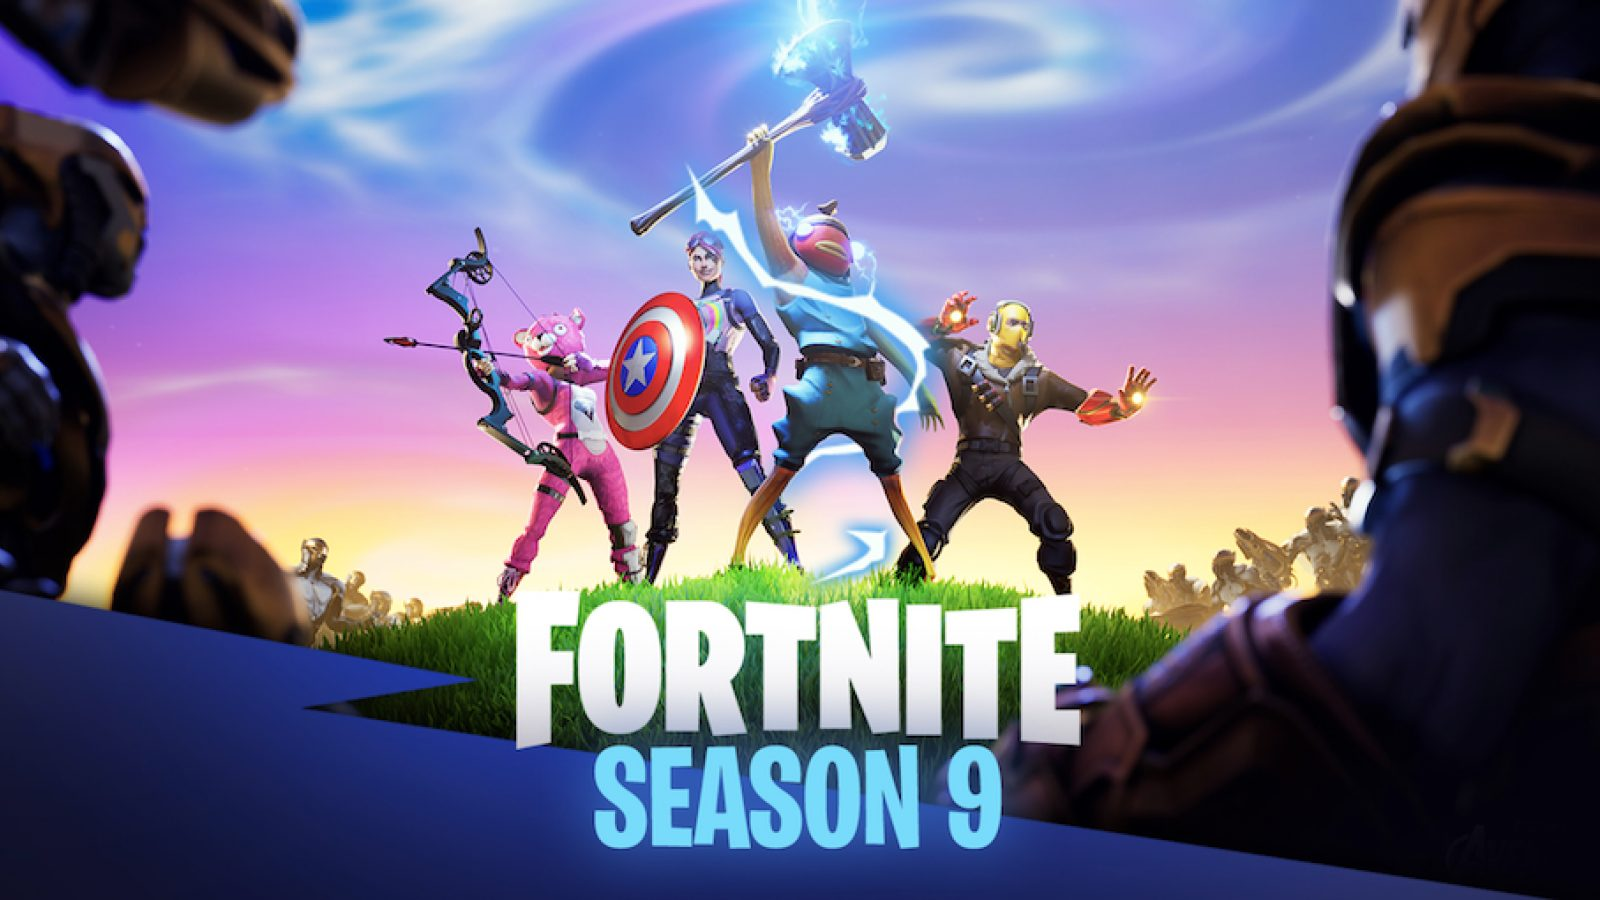 Fortnite Season 10: Release Date, Skins, Maps, Weapons and